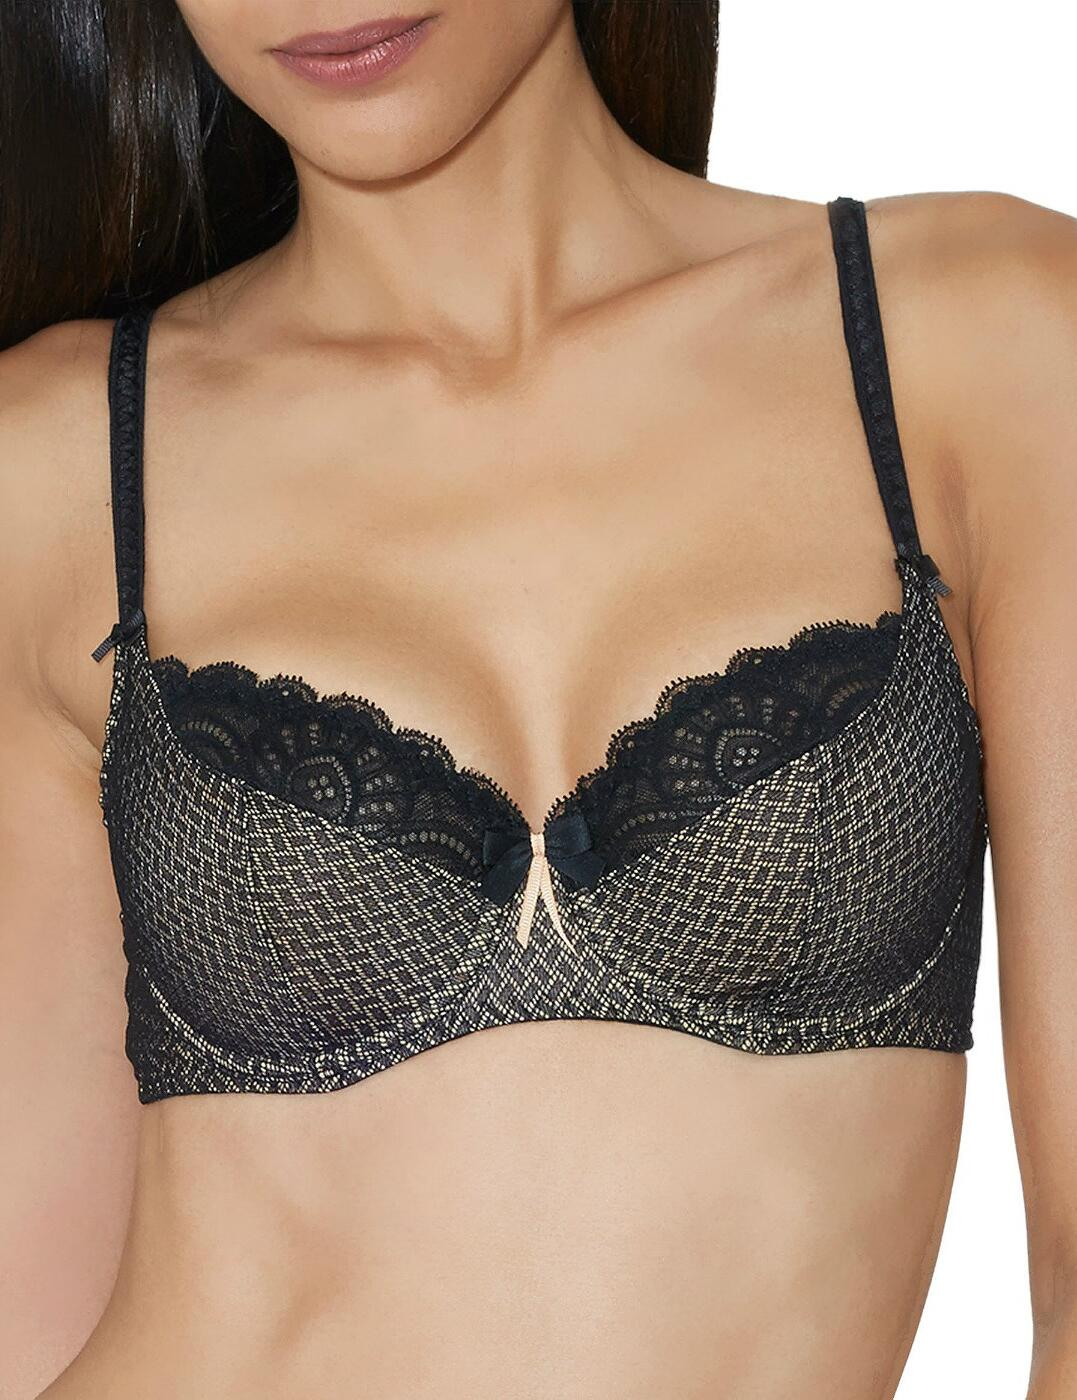 Y615 Aubade Art Of Kissing 3/4 Cup Bra - Y615 Jet Black